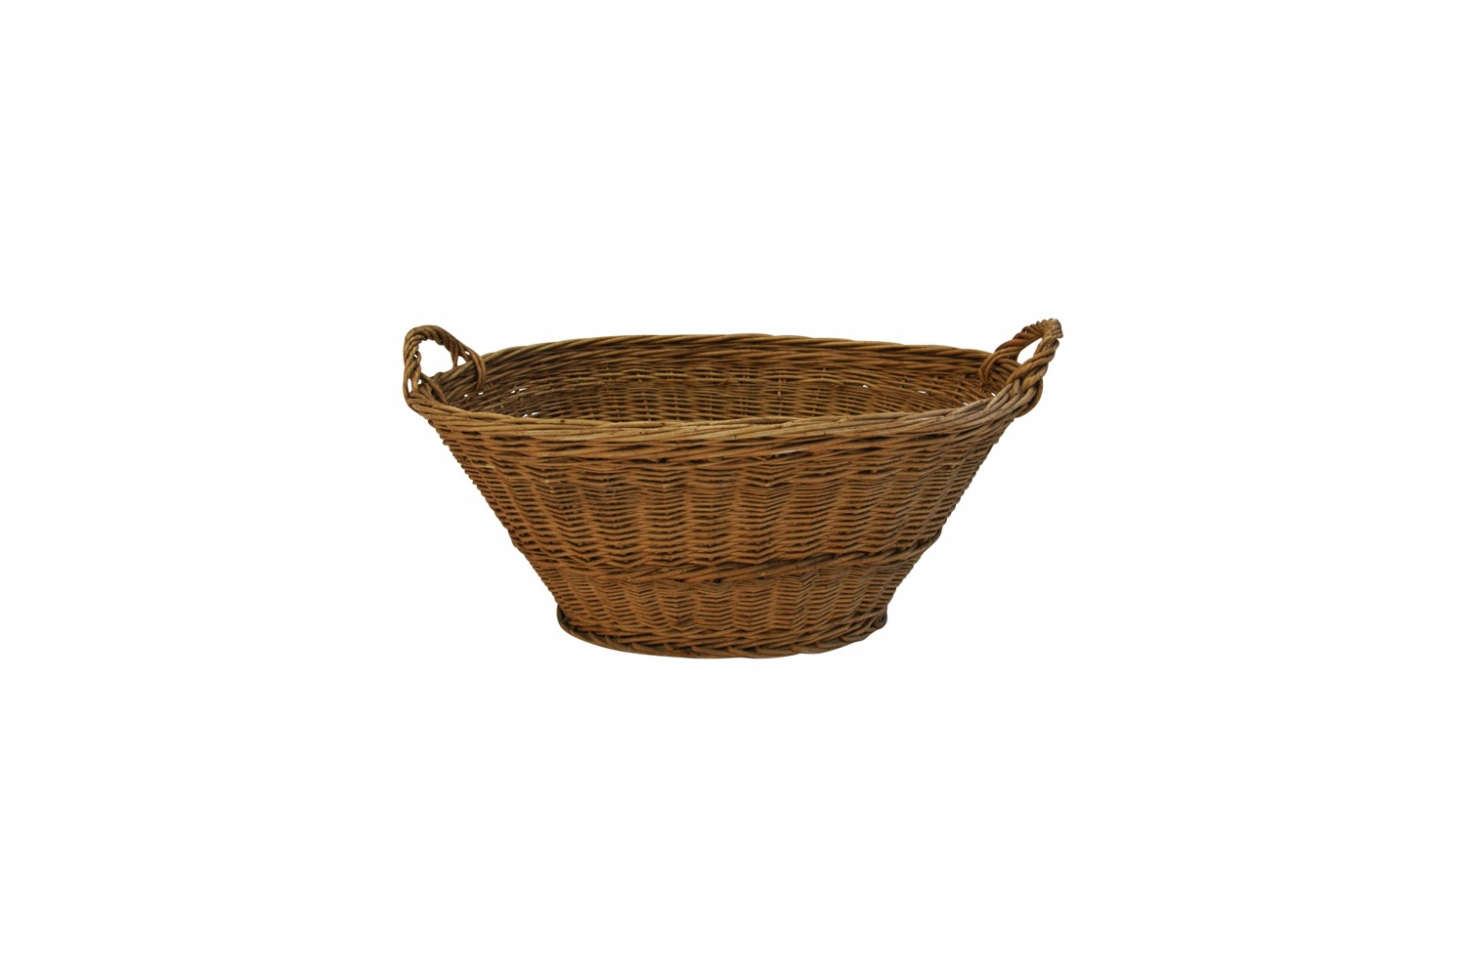 Source anAntique Woven Oval French Market Basket ($135) from Chairish or from Flea Market France, a seller on Etsy.